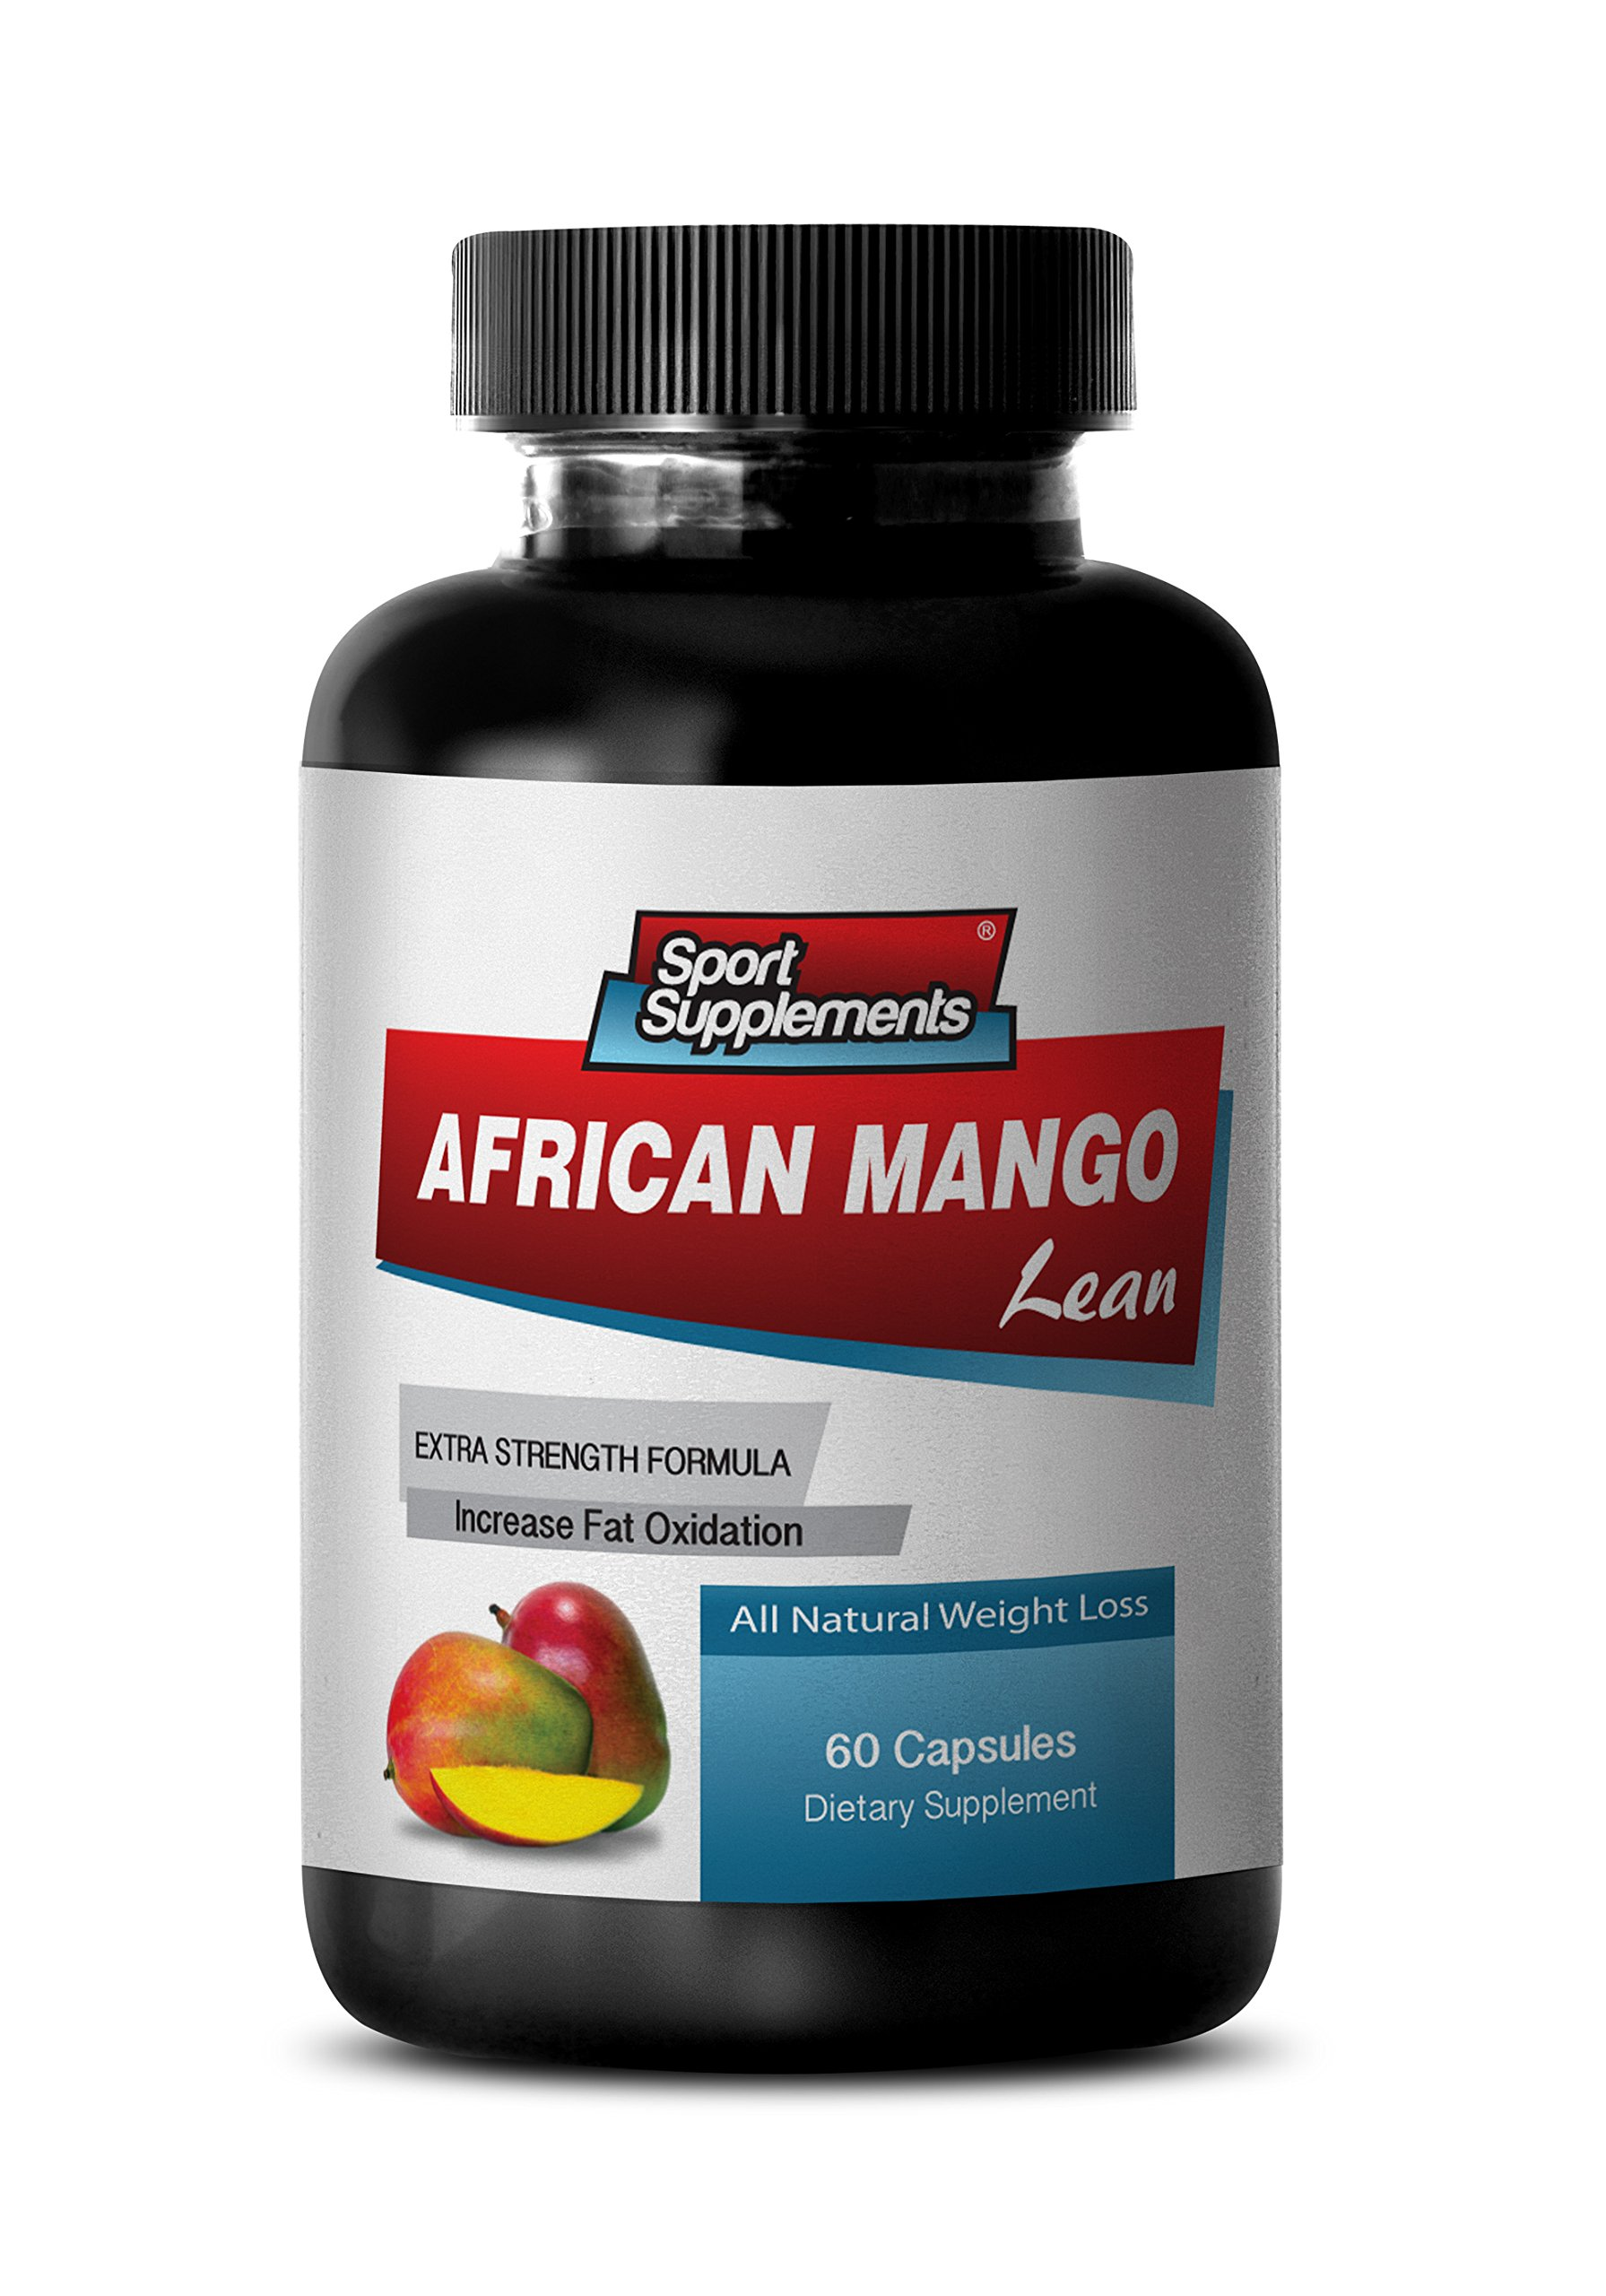 Fat burners for men - AFRICAN MANGO EXTRACT with Green Tea, Resveratrol, Kelp, Grapefruit 1200 Mg - African mango cleanse - 1 Bottle 60 capsules